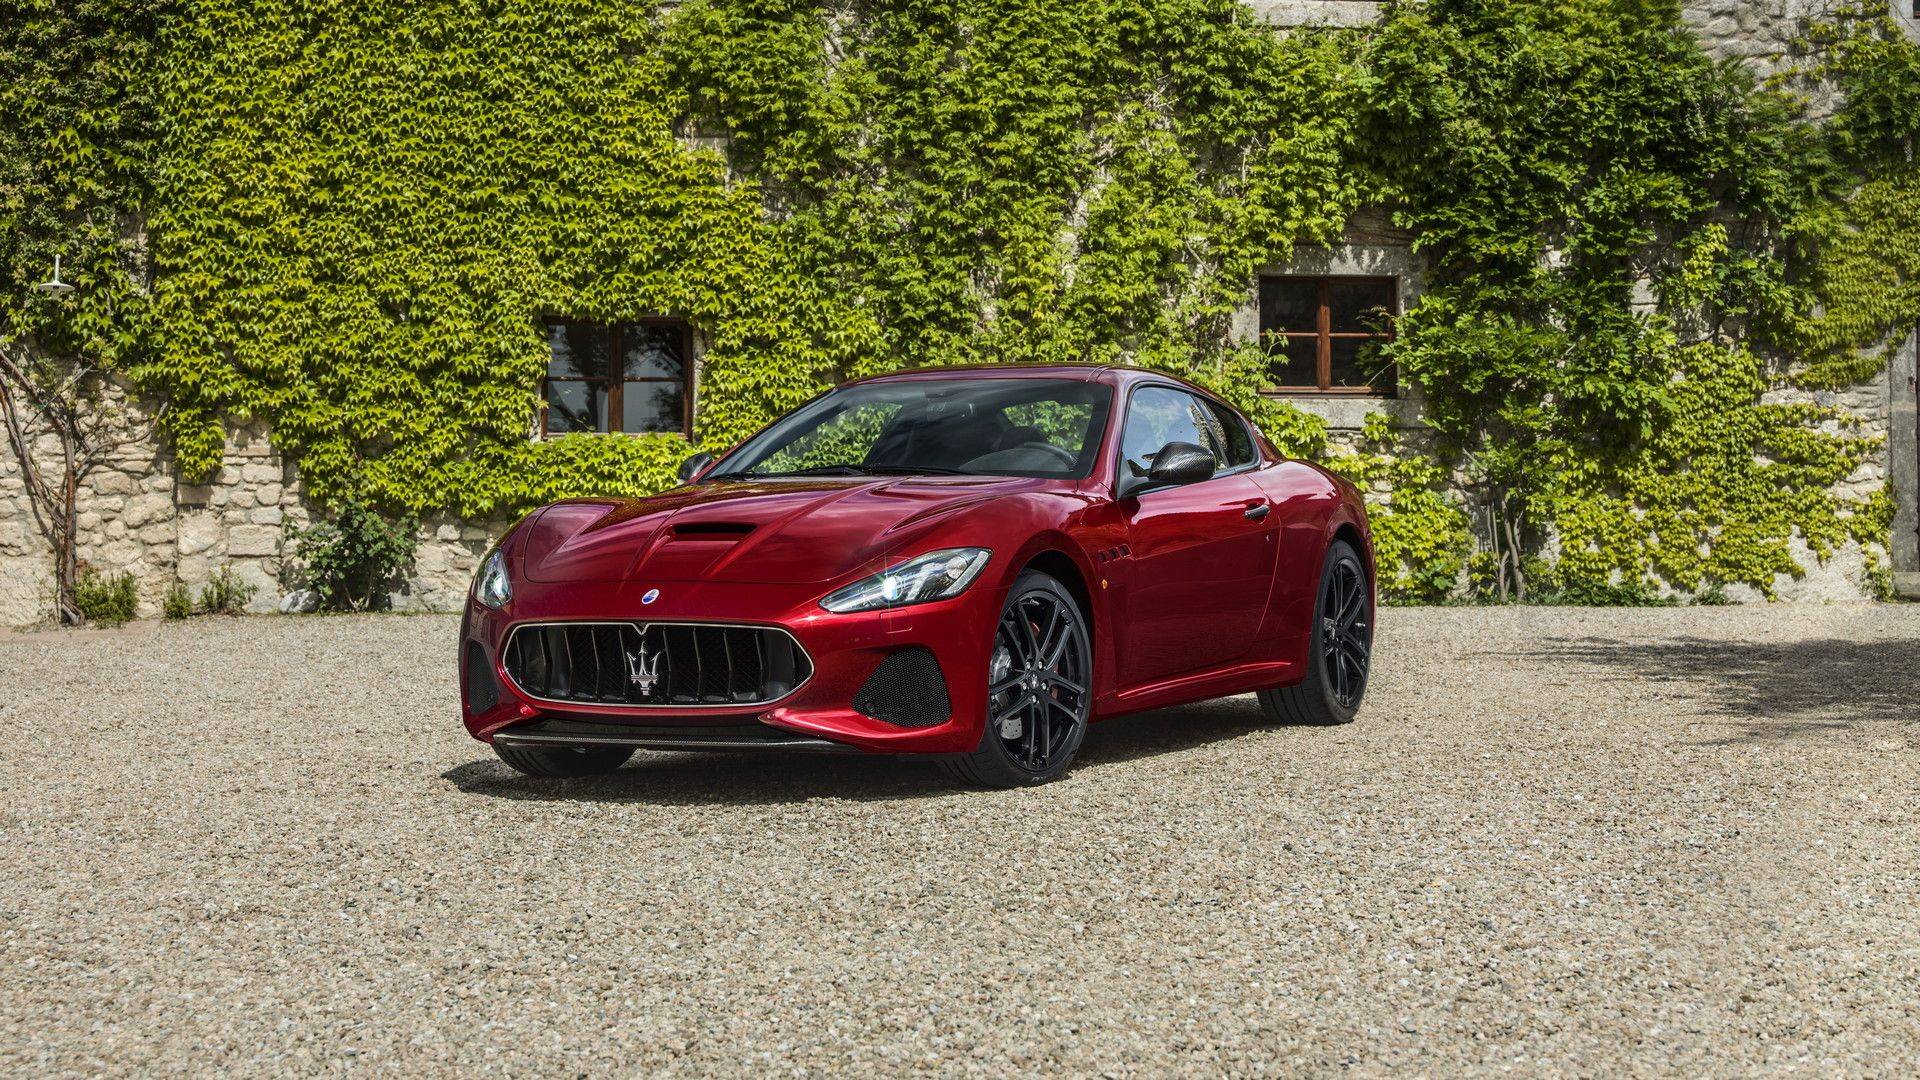 New Maserati GranTurismo Lease Deals Boston MA Kelly Maserati